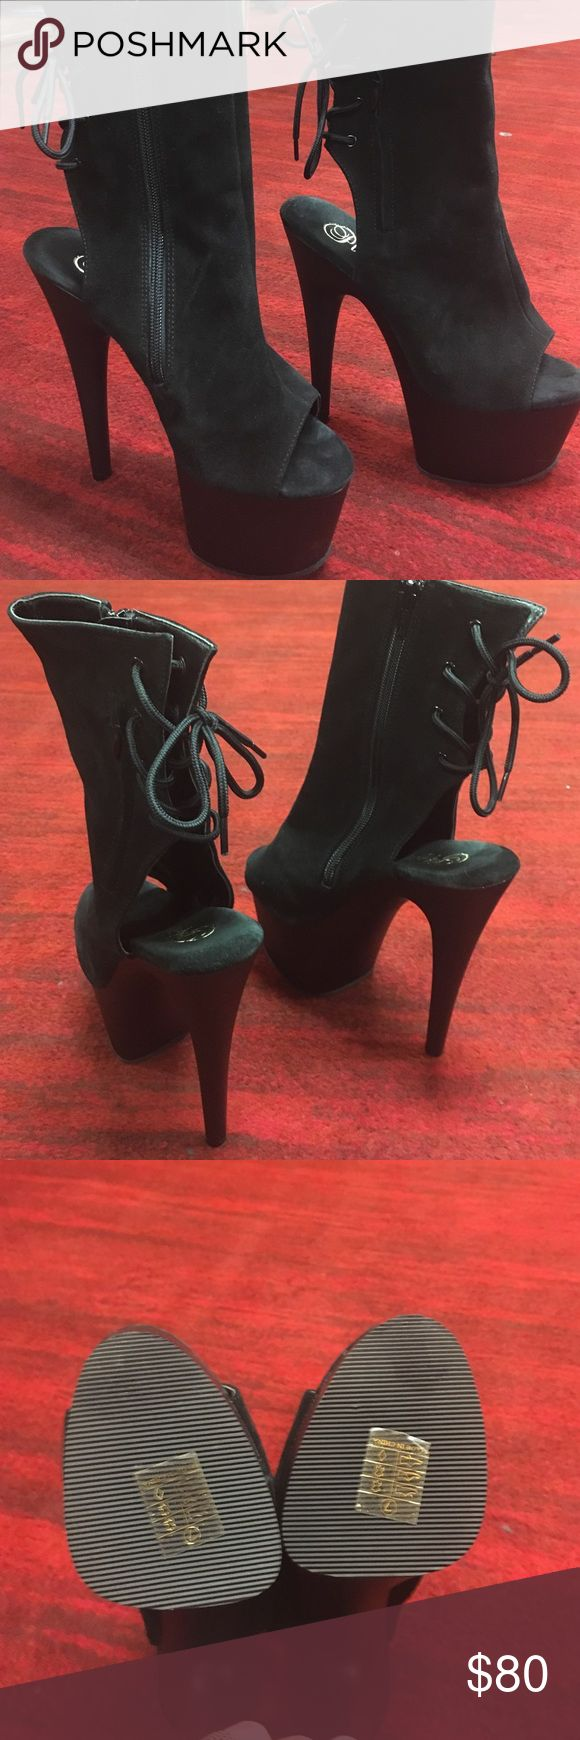 High hill shoes. Brand new, great for the night clubs, 7 inch hills,  zipper on the side. Pleasers Shoes Heels